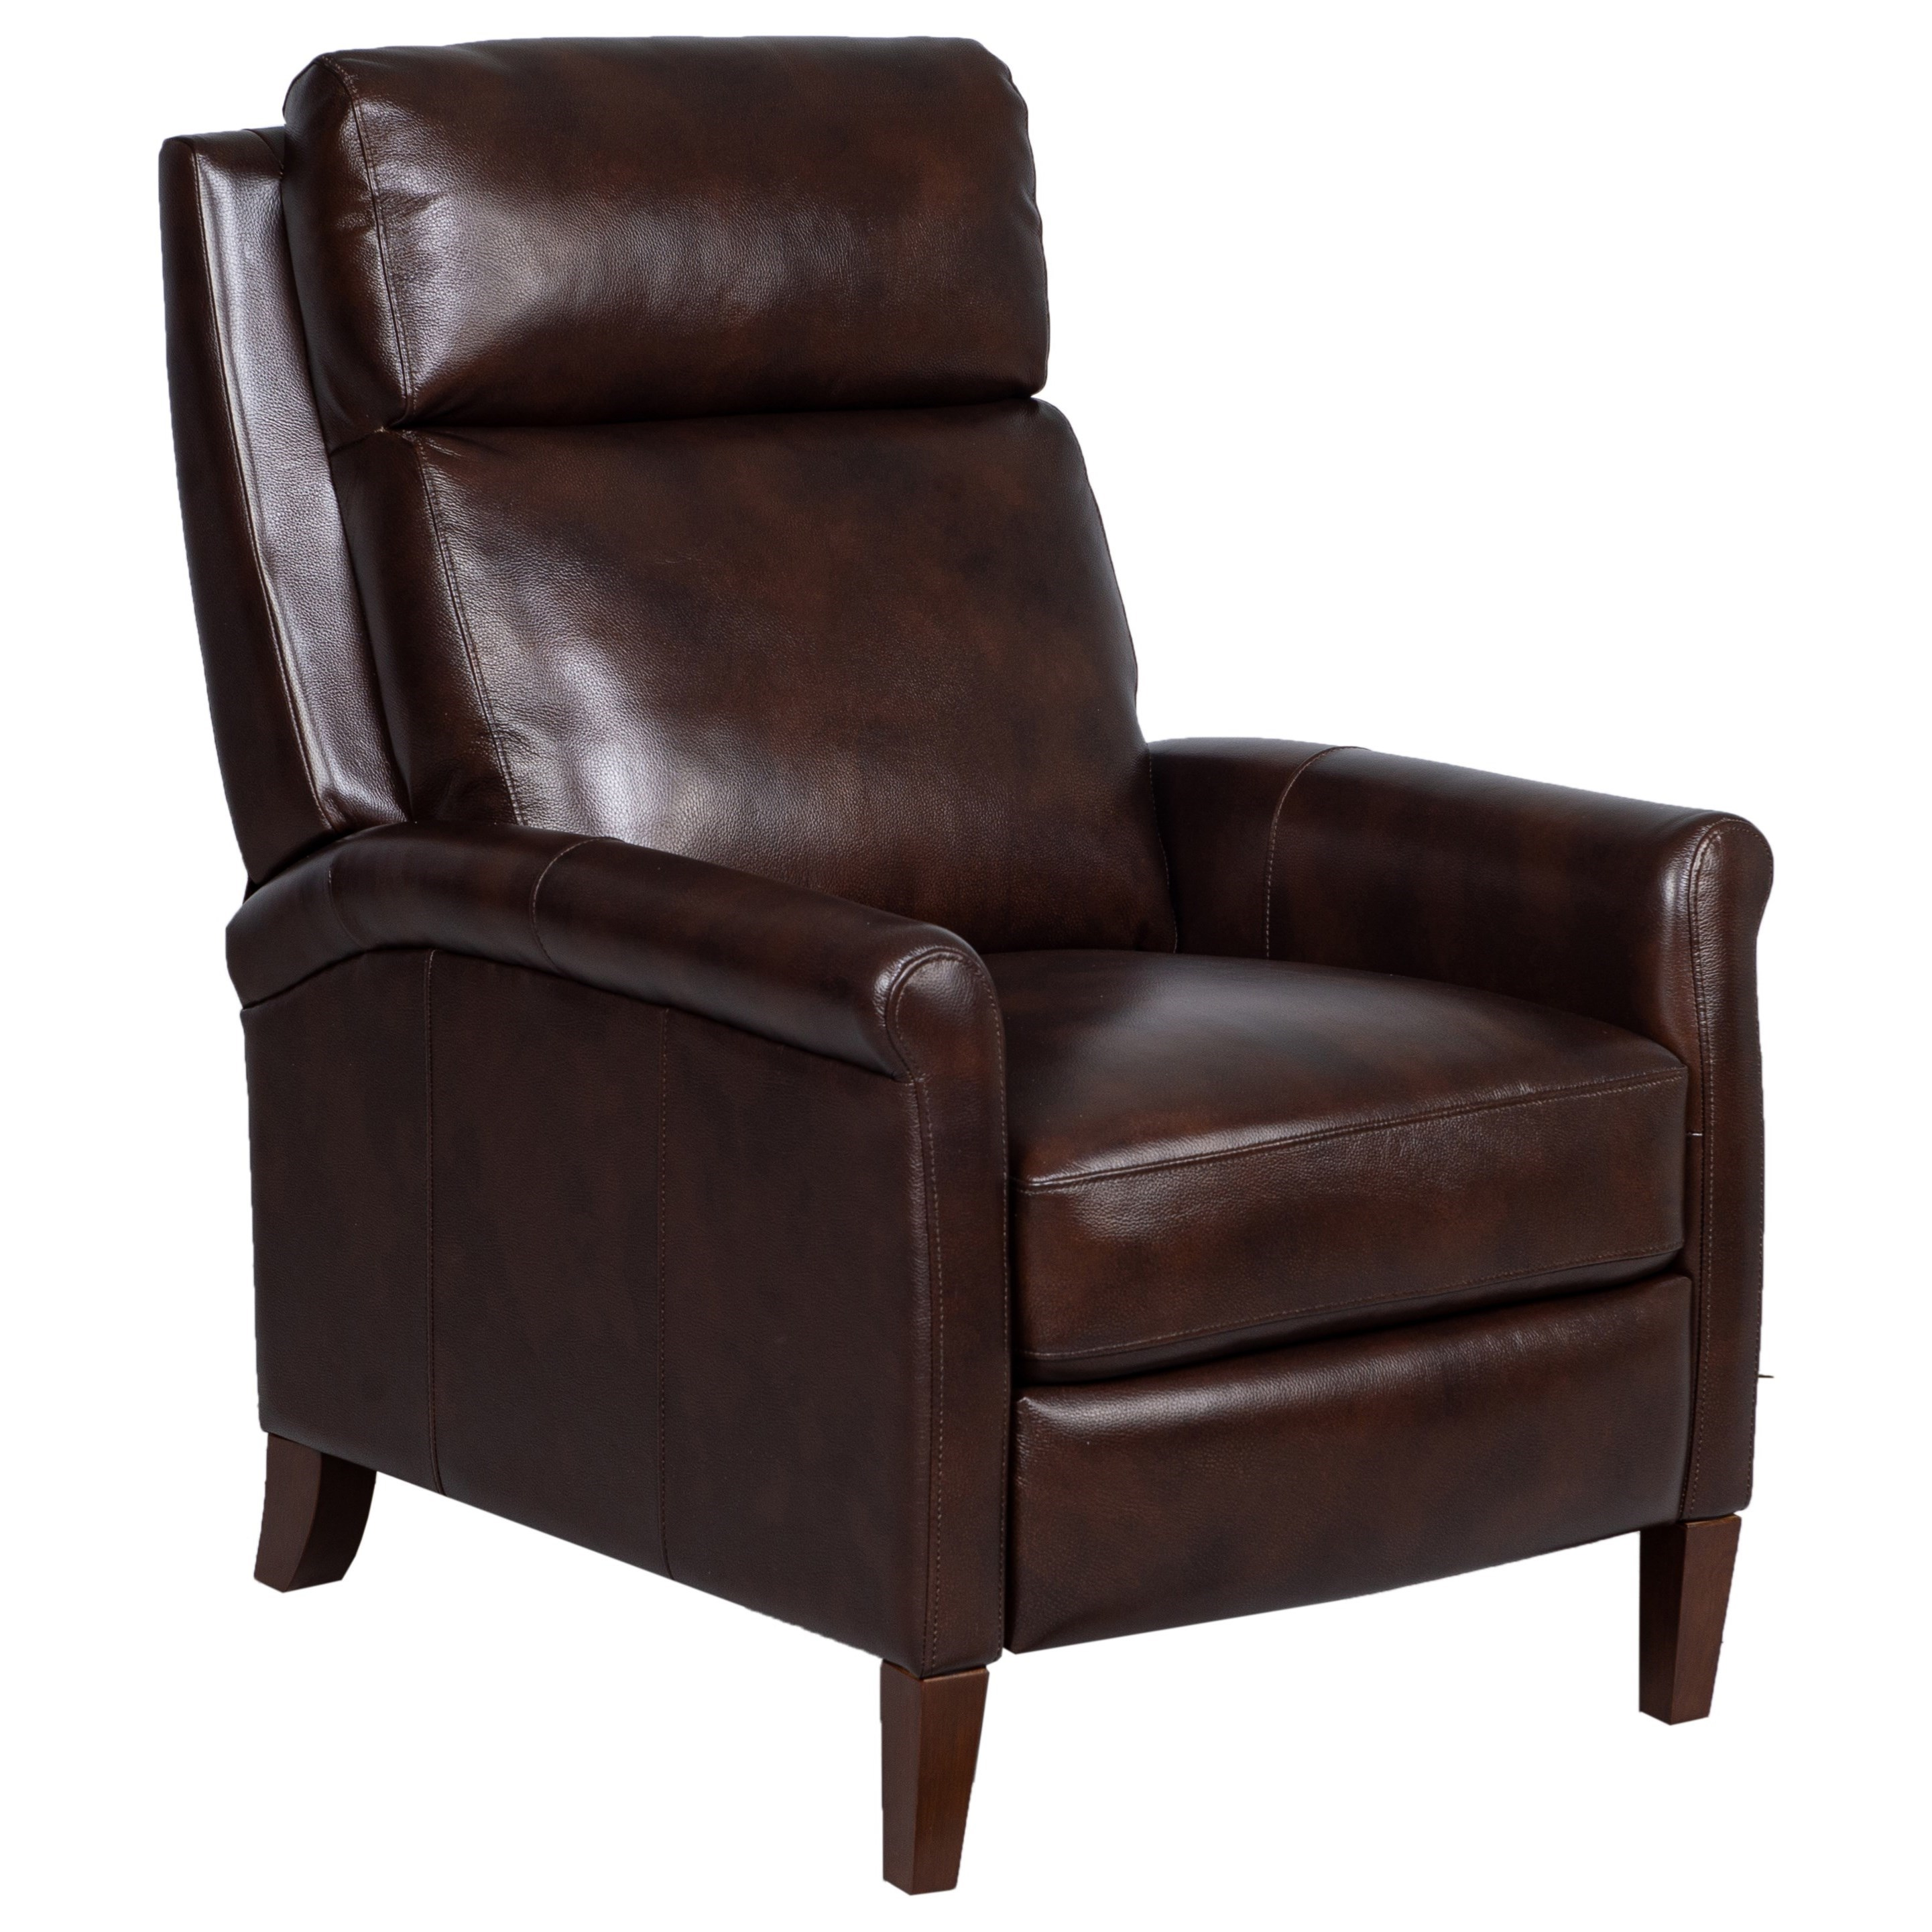 1916 High Leg Recliner by Synergy Home Furnishings at Stoney Creek Furniture